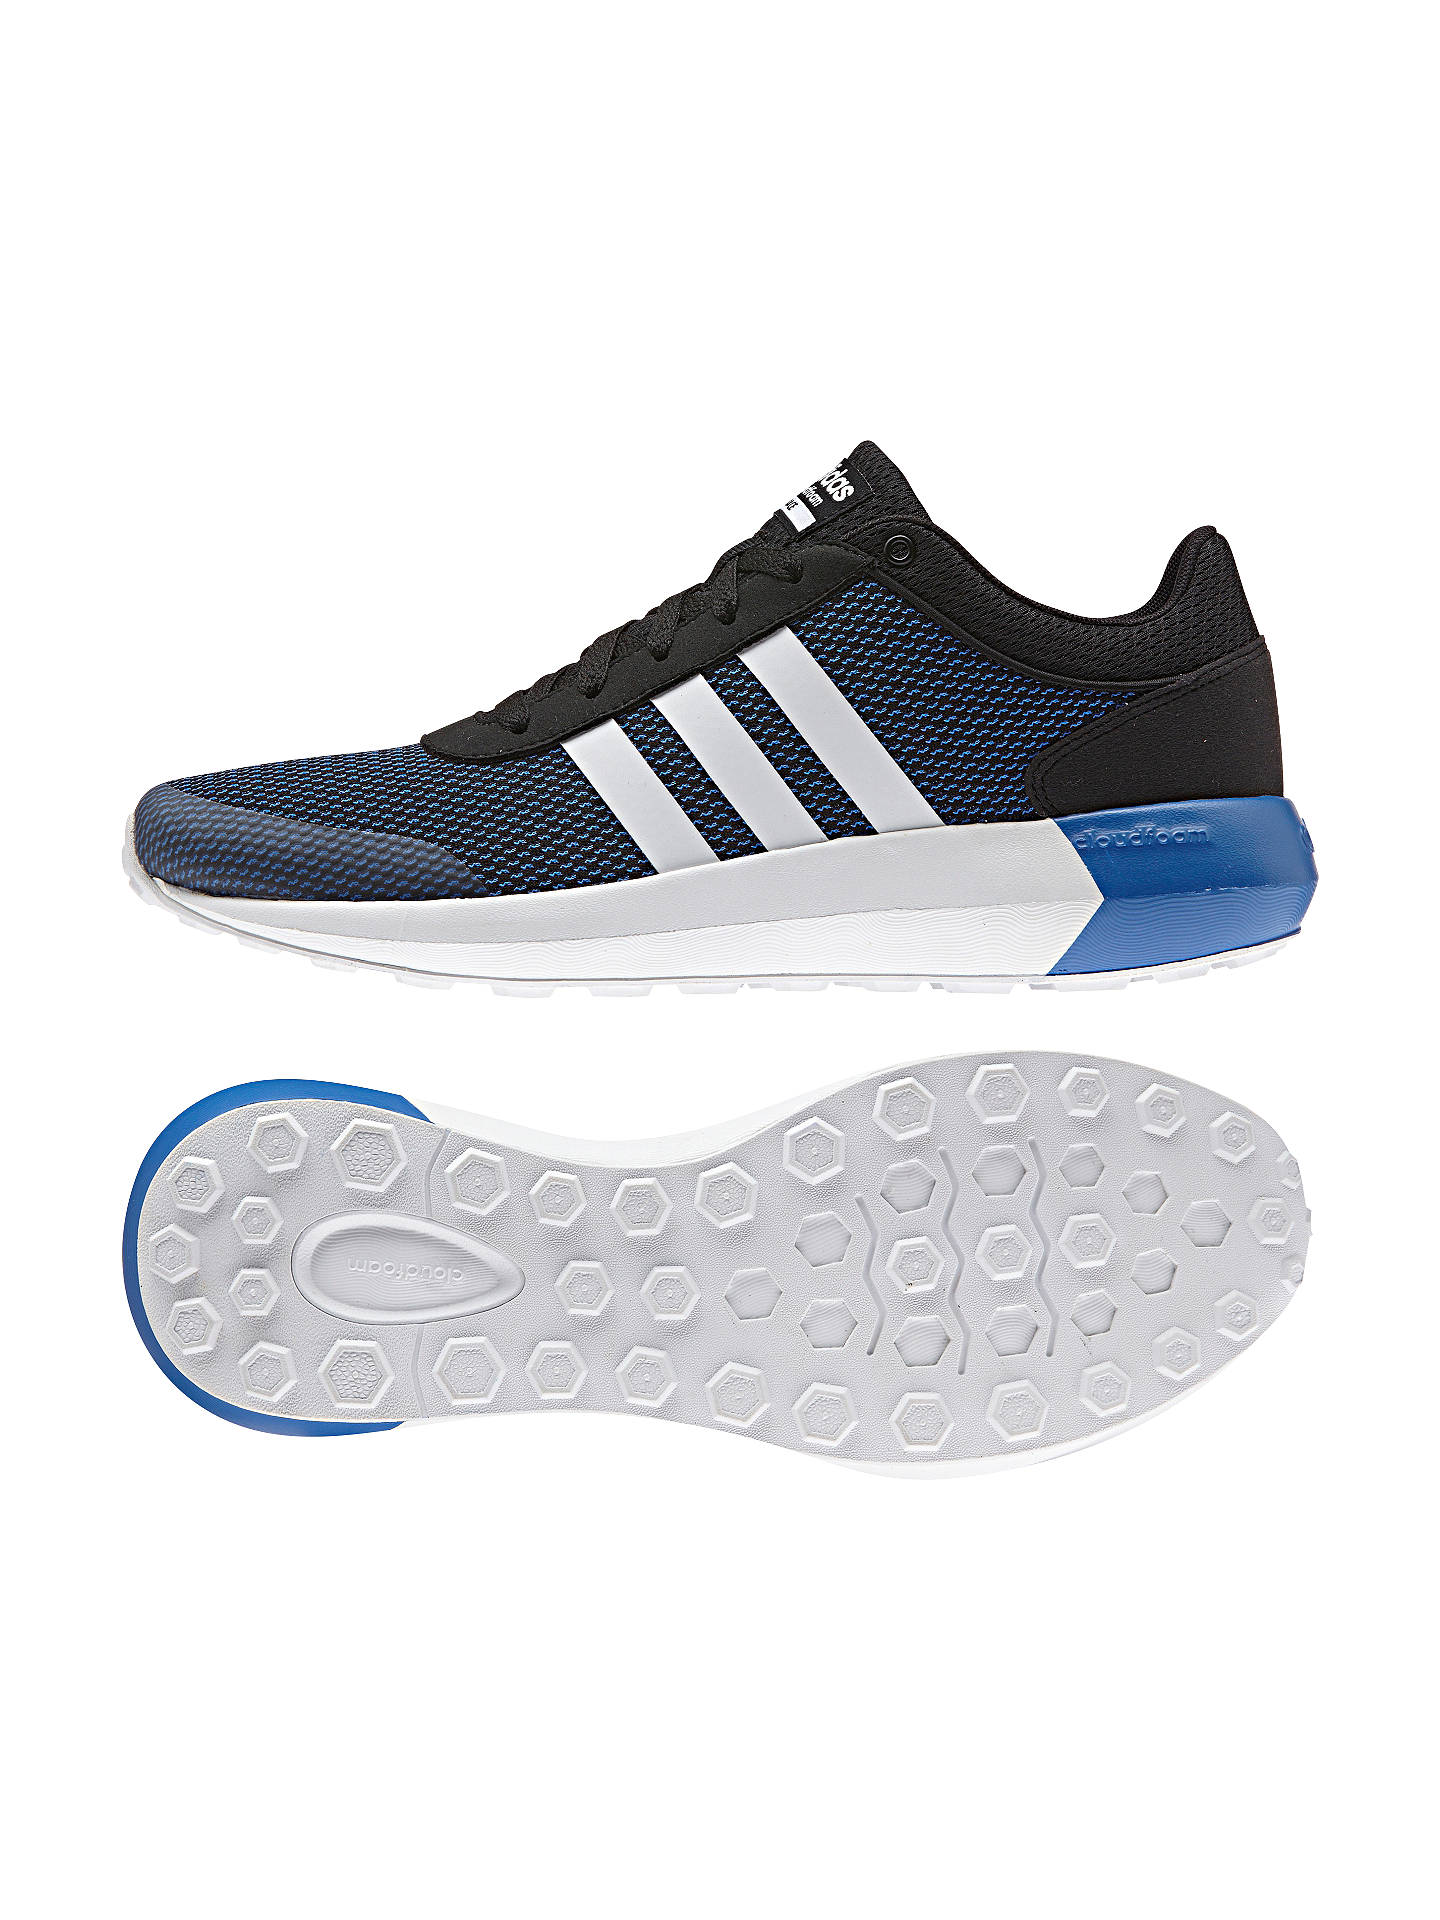 huge selection of 98954 13471 ... Buy Adidas Neo Cloudfoam Men s Race Trainers, Core Black White Blue, 8  ...